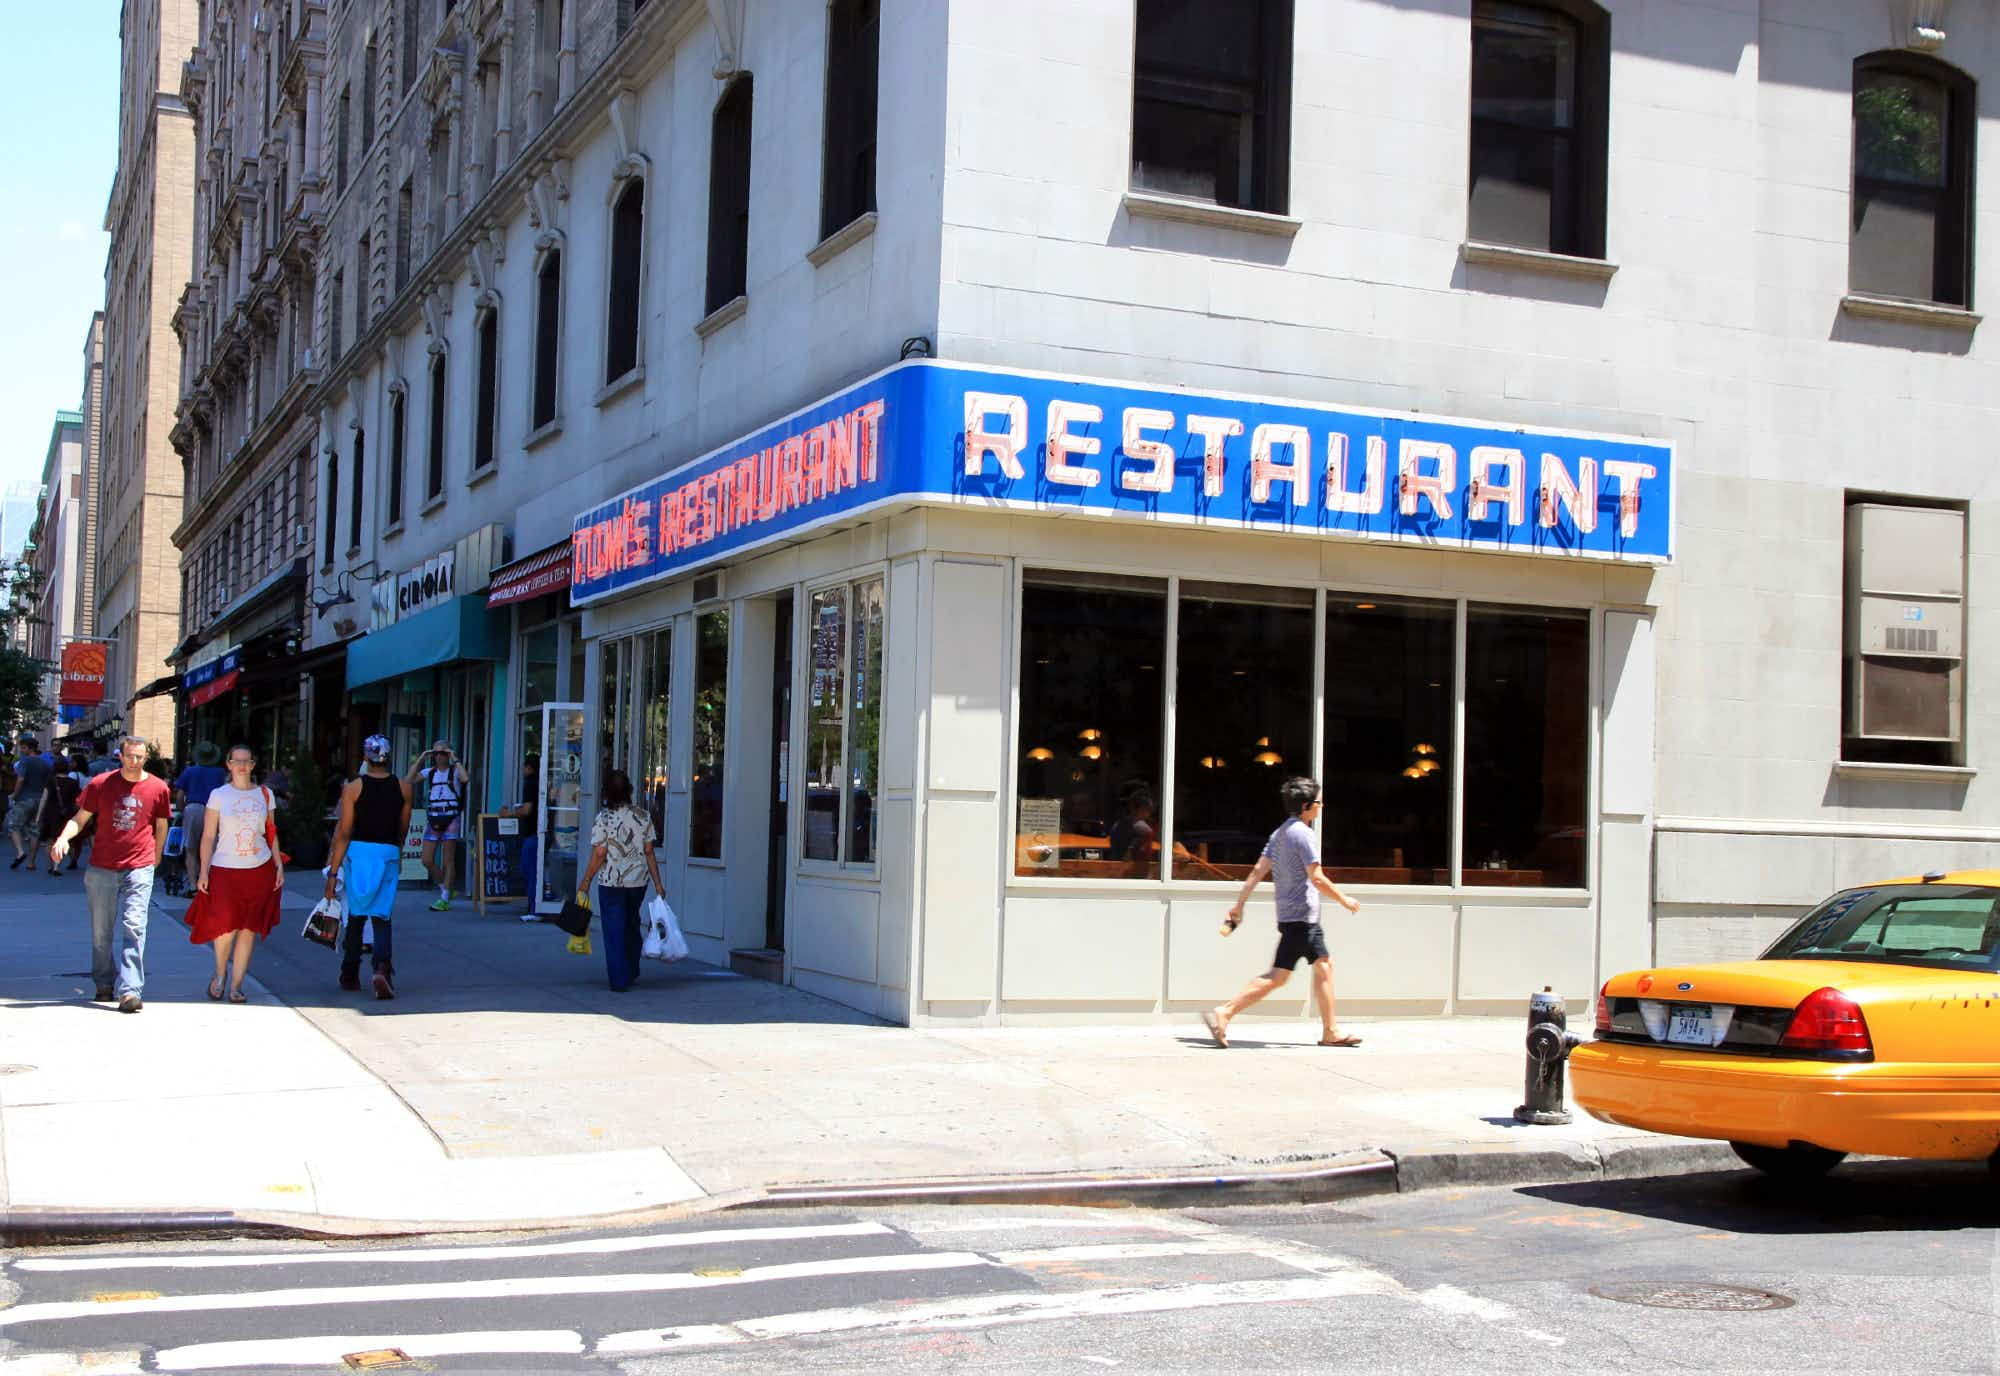 You can take your own walking tour of iconic NYC filming locations via digital concierge